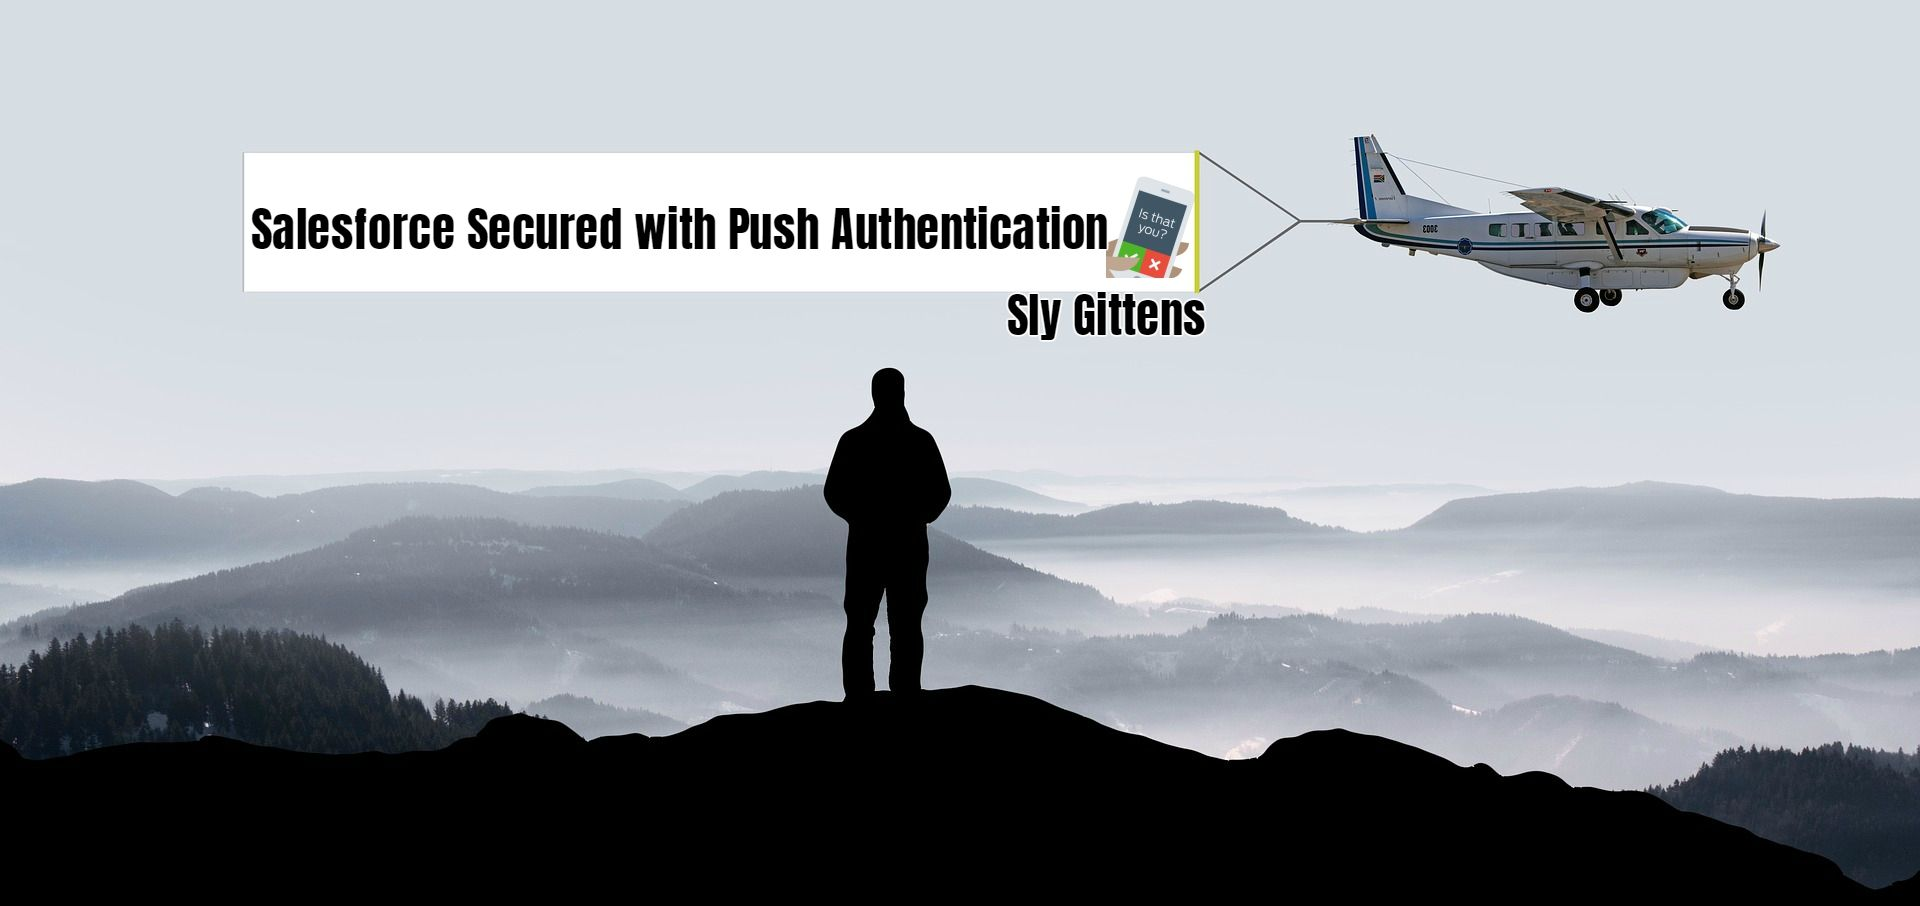 Rsa securid access rsa provides secure authentication for